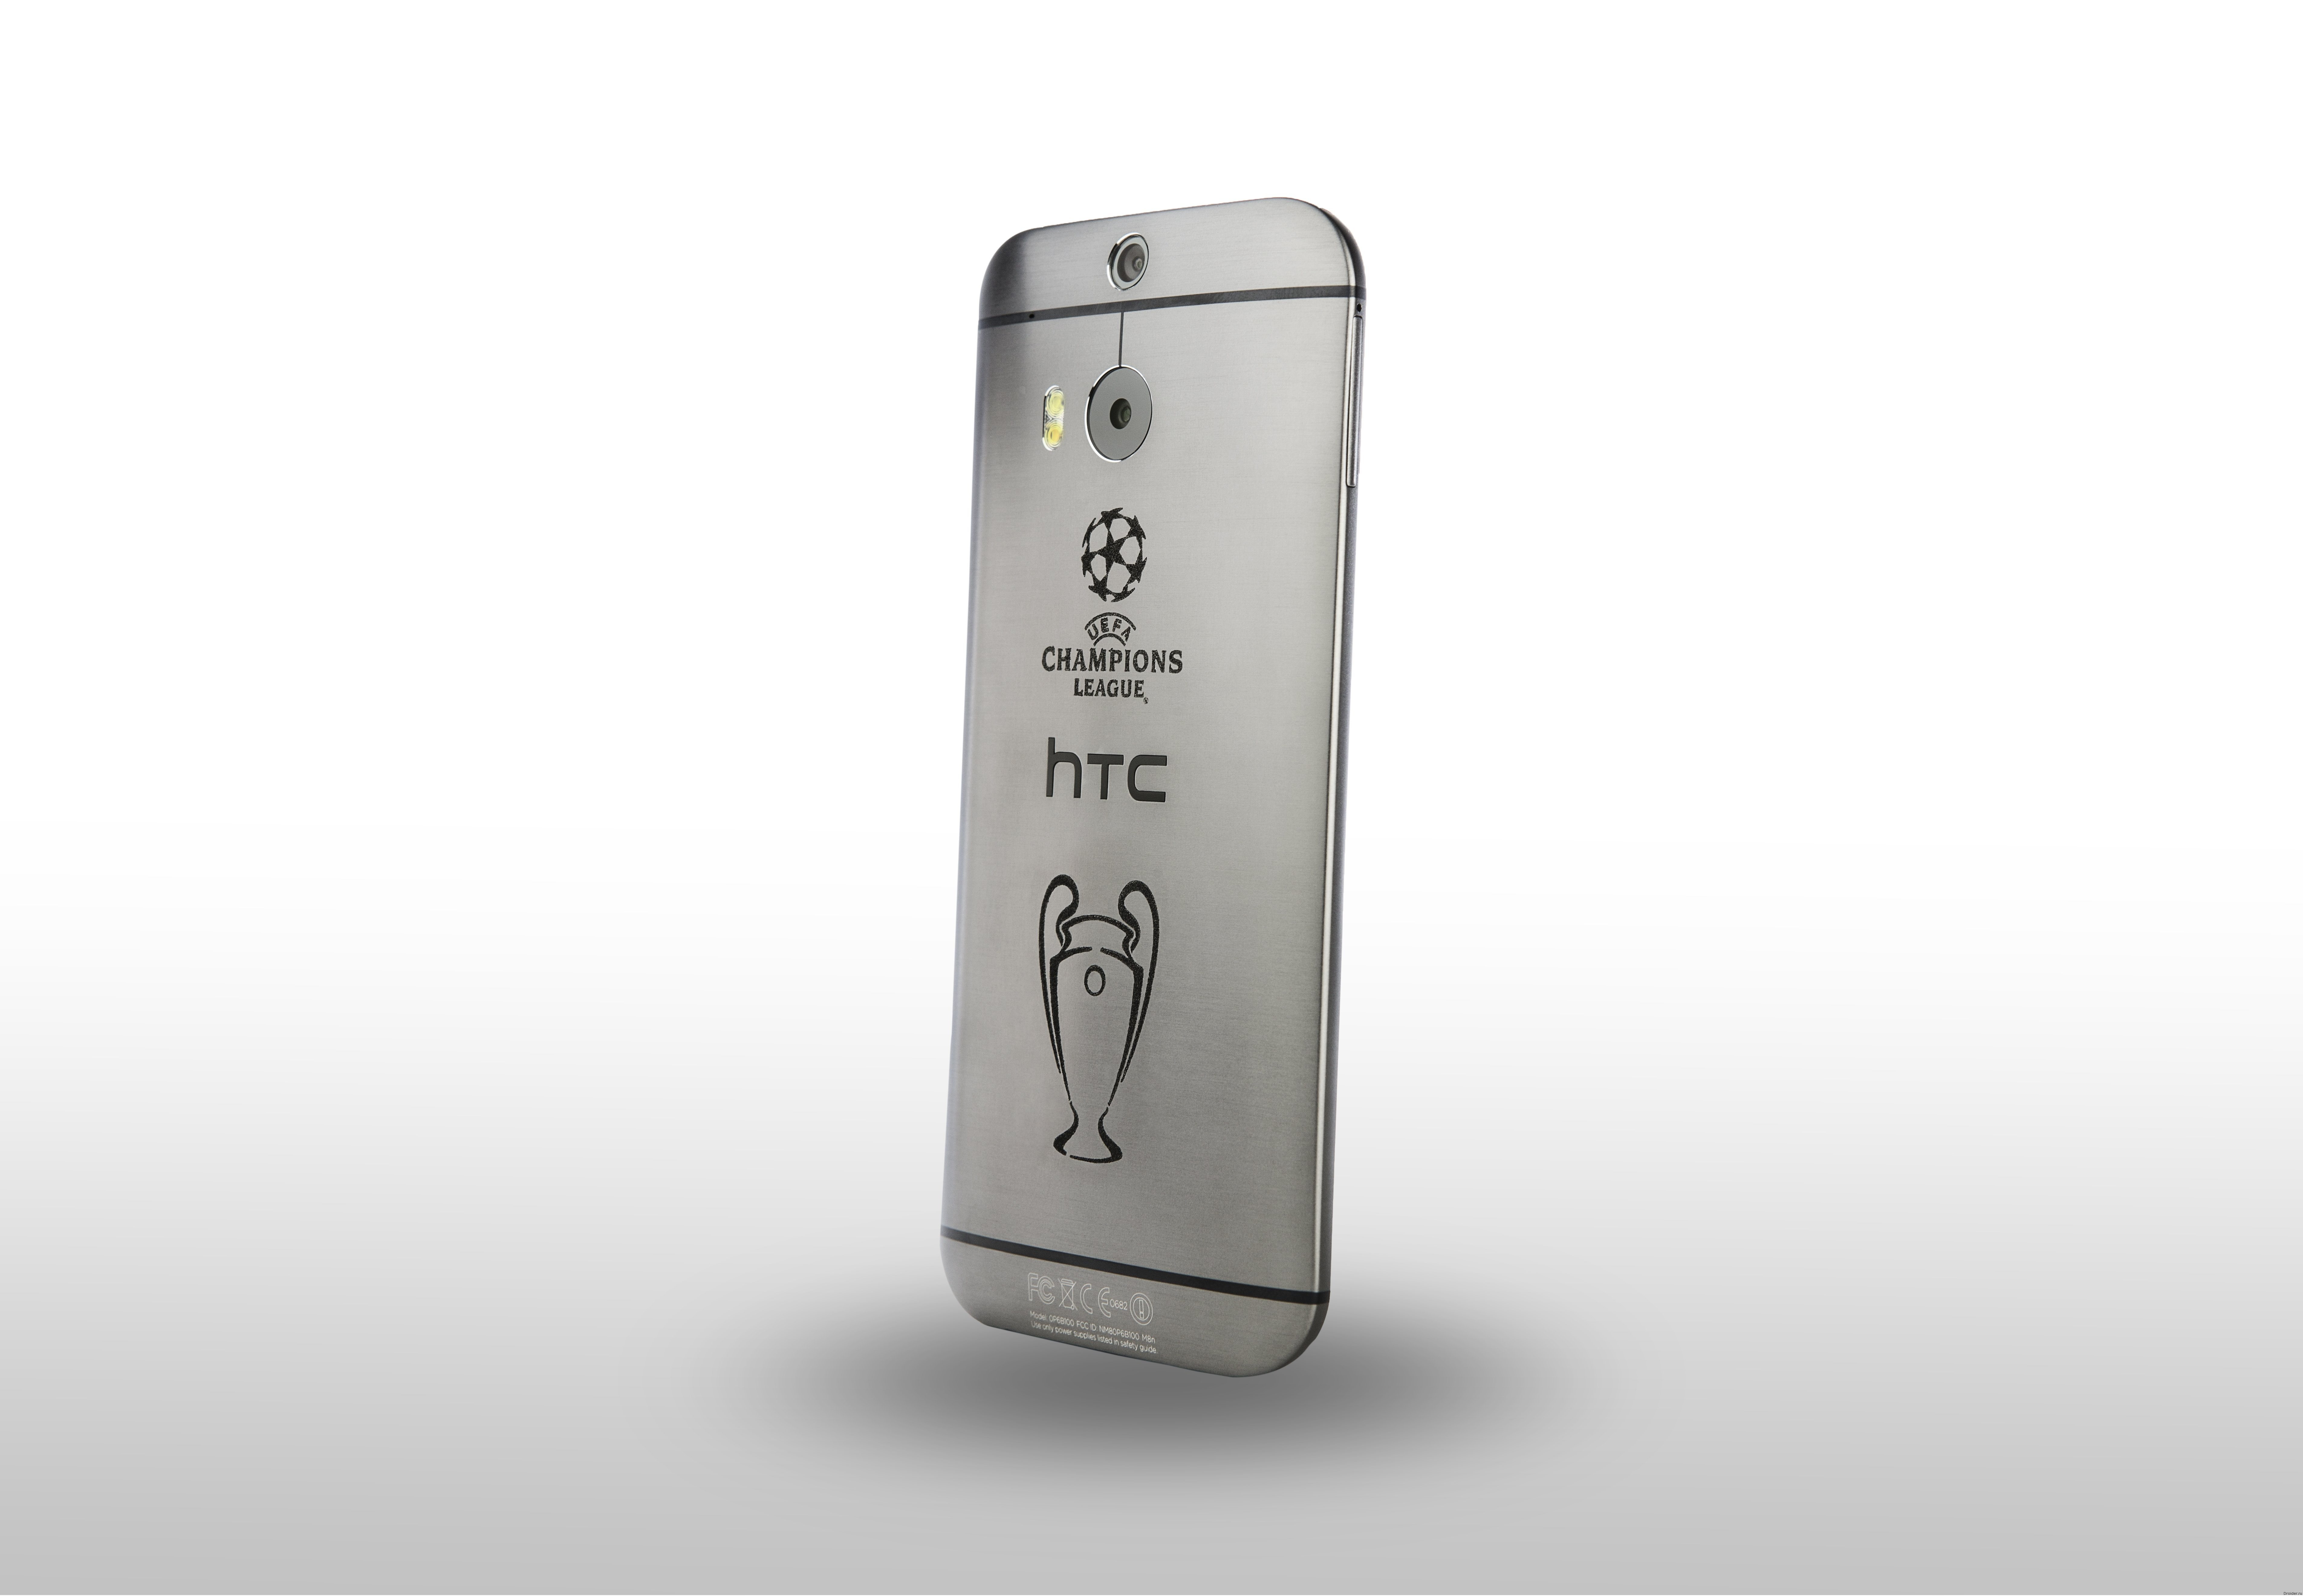 HTC One (M8) Champions League Collector's Edition